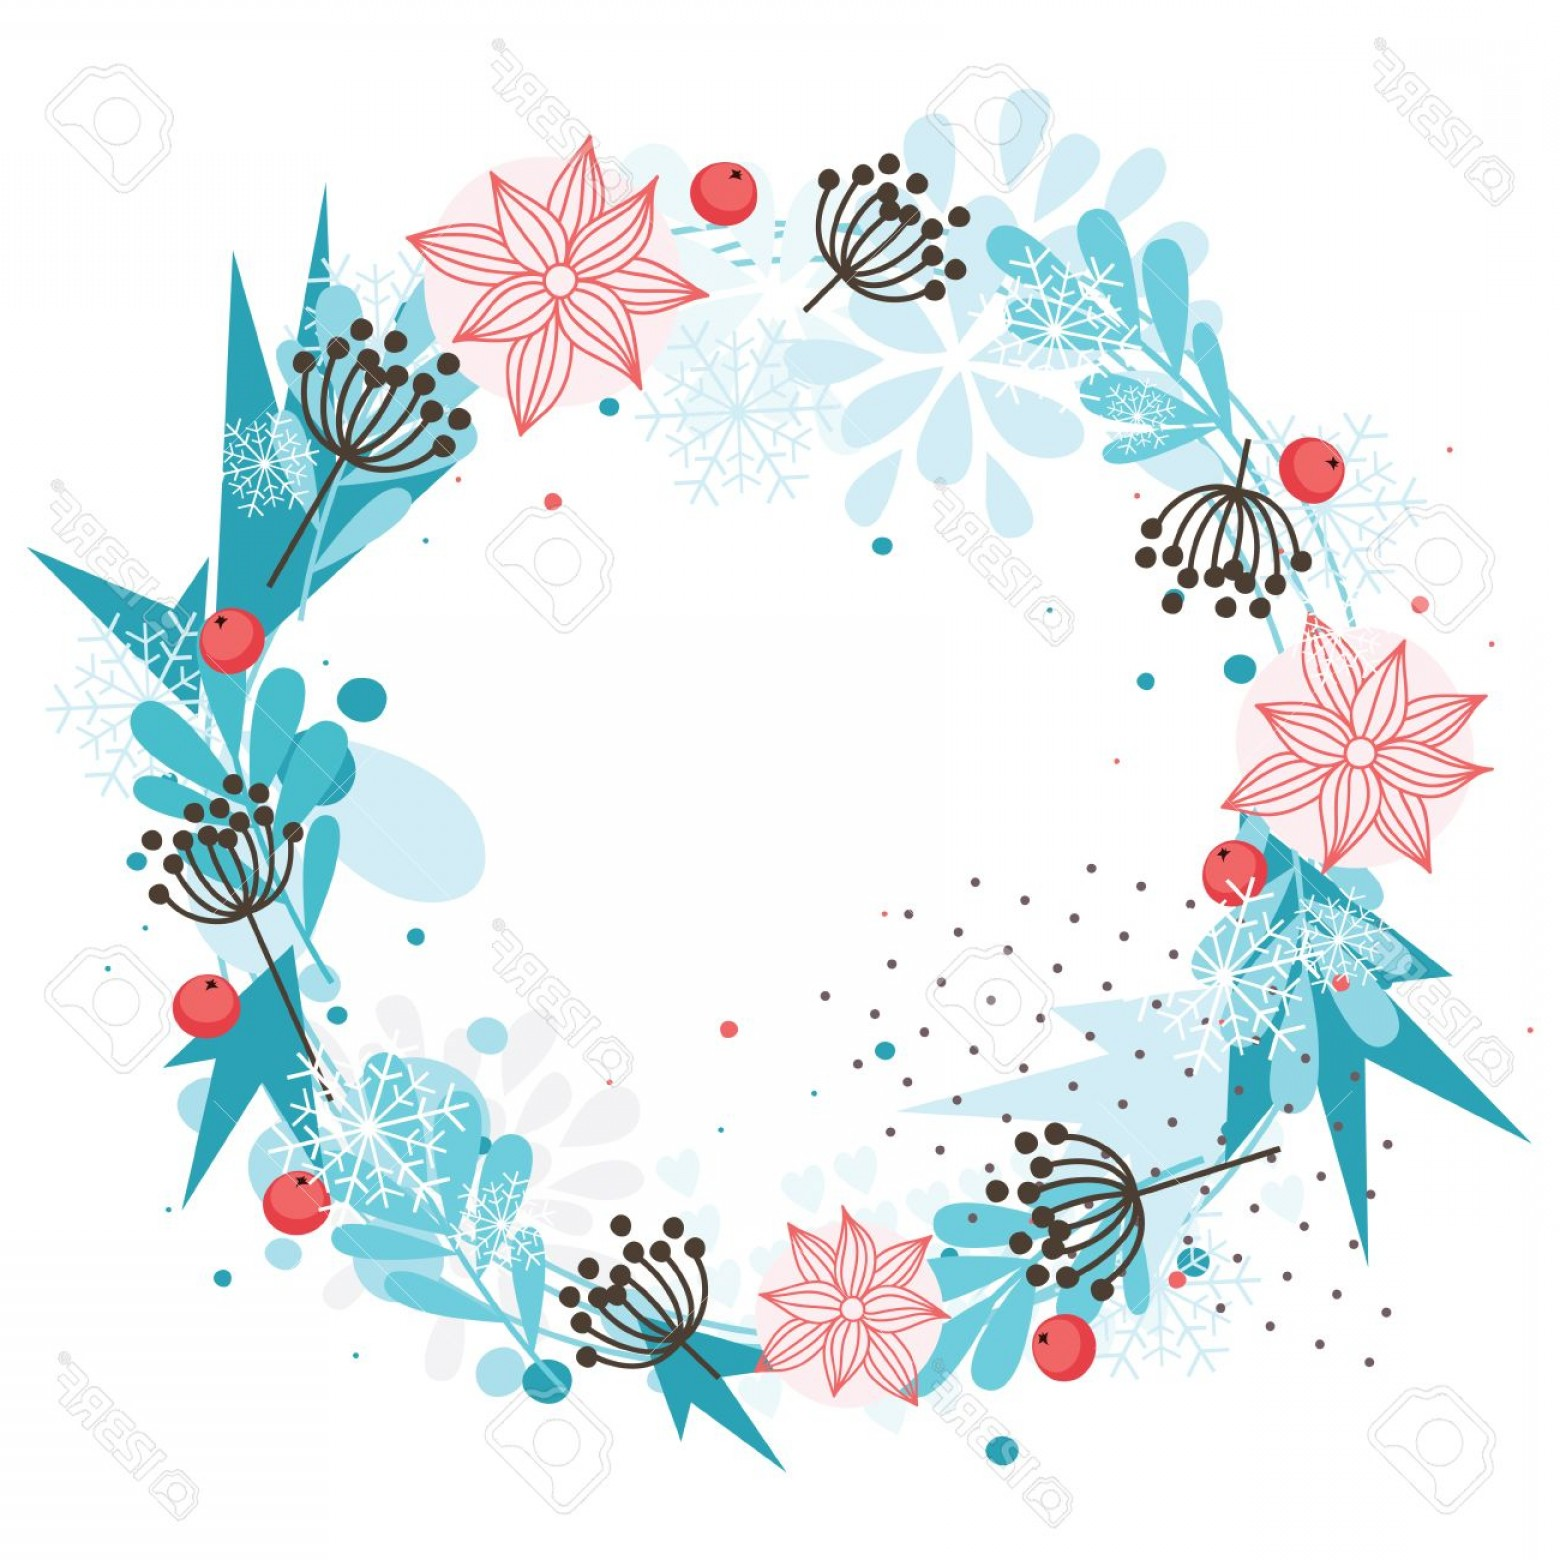 Vector Snowflake Wreath: Photostock Vector Abstract Winter Wreath With Red Berries And Blue Snowflakes